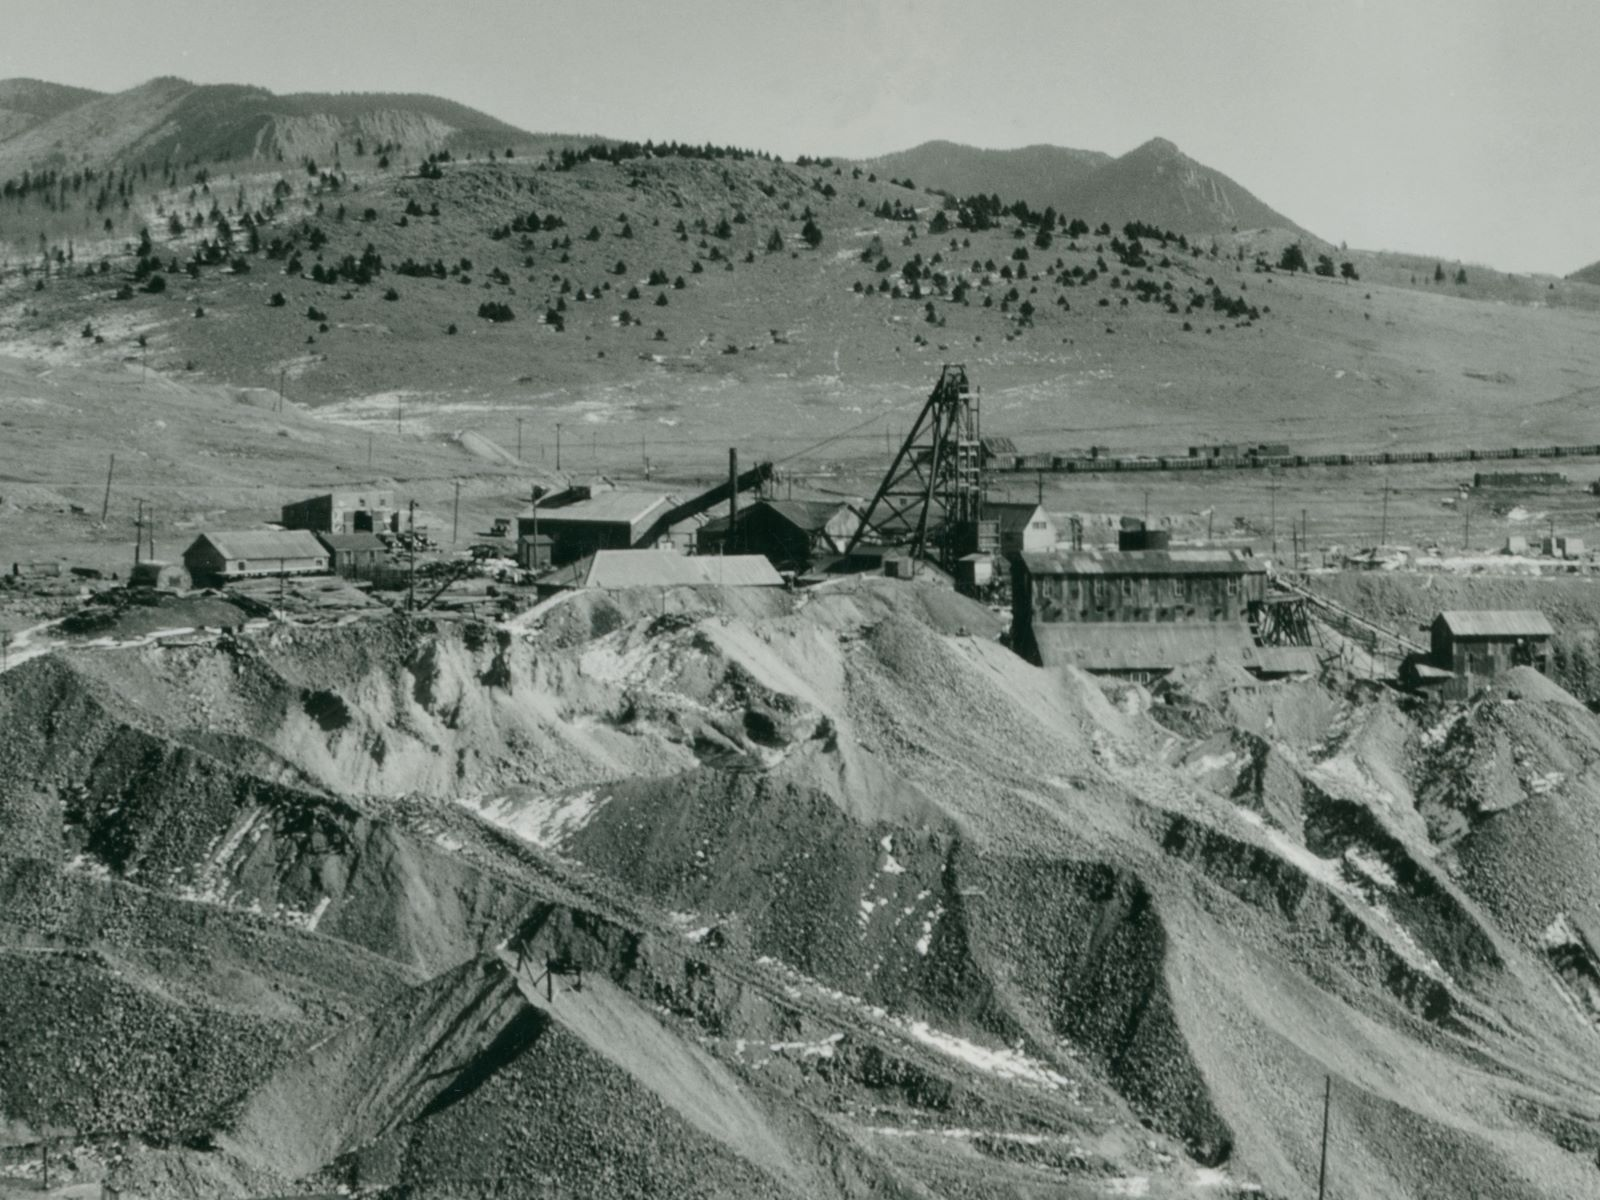 Cropped view of the Vindicator Mine Operations 1934-ish style. Huge dumps covering the ground, the Ore-House is partly buried in them it appears. Not the best view, but it is a long distance shot from near the Last Dollar mine on bull Hill, so hard to get a good quality shot.    Behind the large Headframe is seen a huge string of boxcars in the Bull Hill Yards of the Midland Terminal, making up the background scene behind the more top part of the headframe of the Vindicator, and of course the mountains in the horizon background.